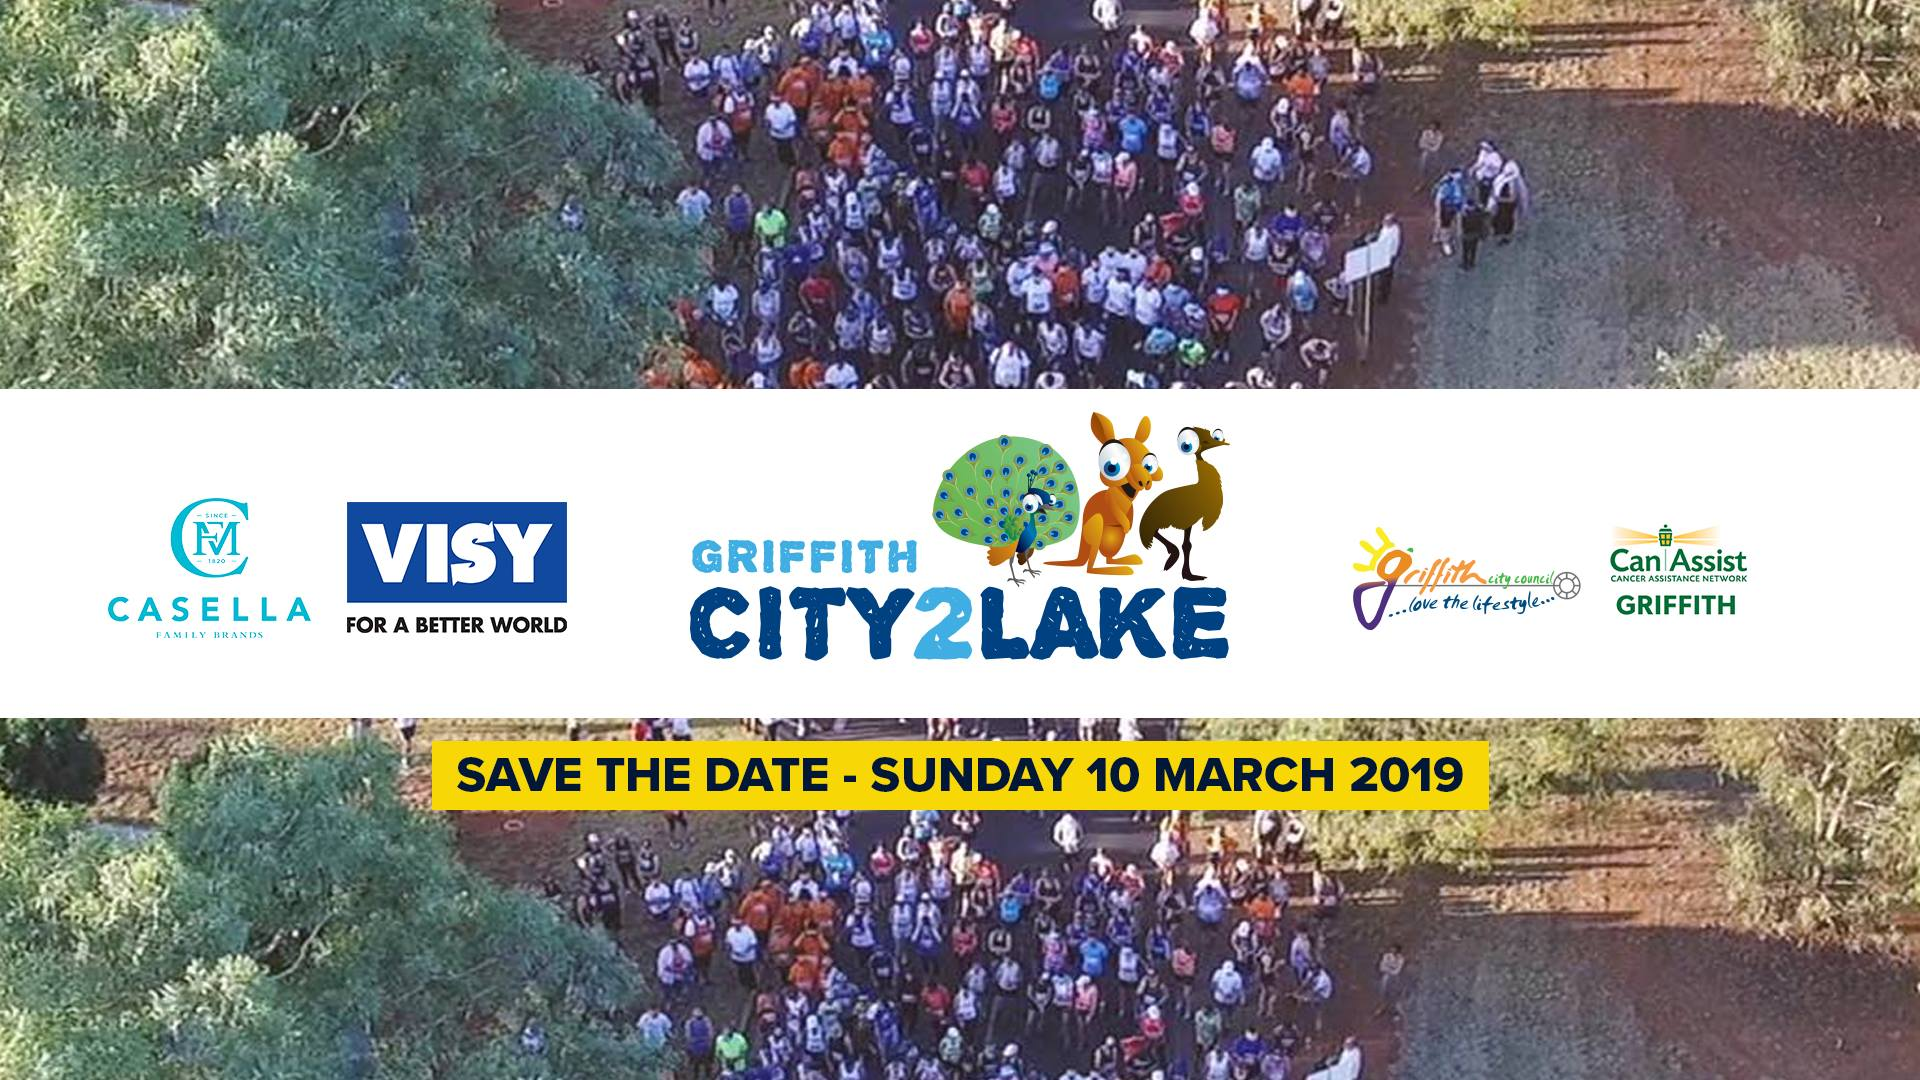 City2Lake 2019 for Griffith Can Assist